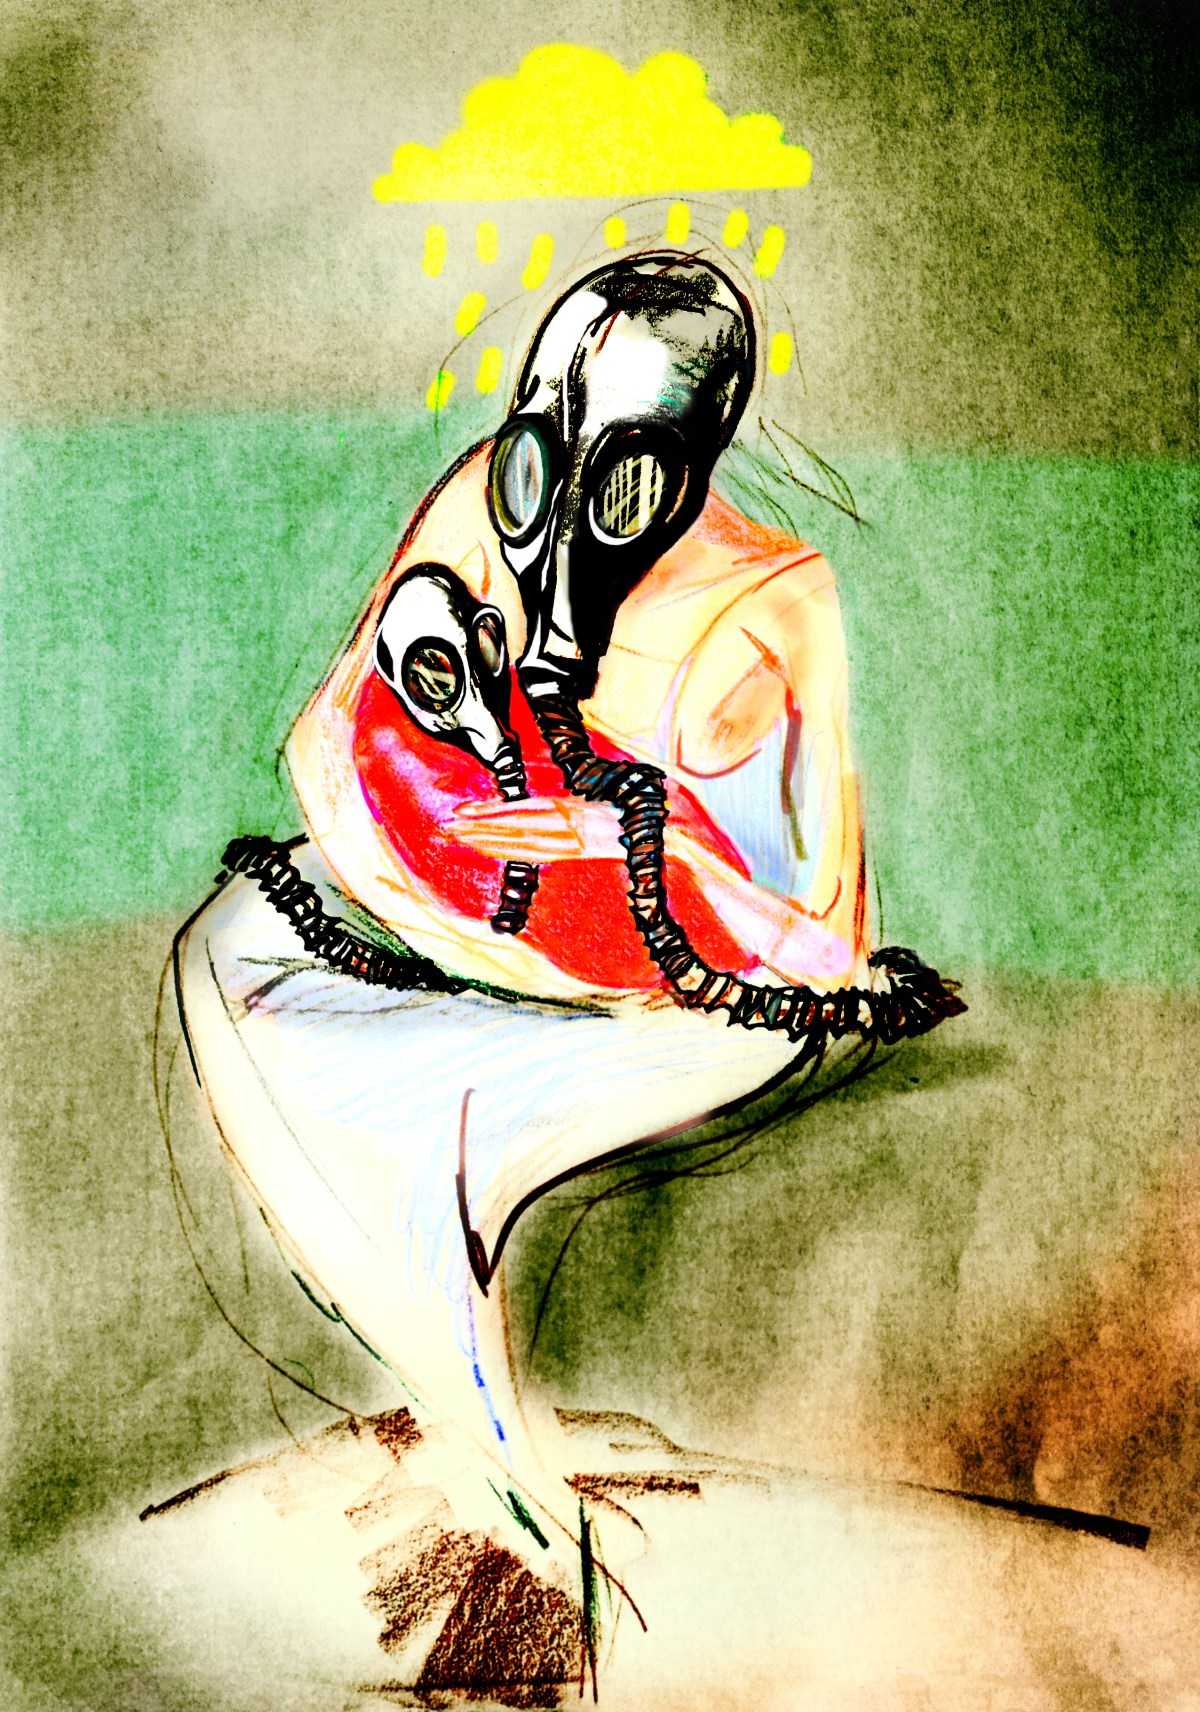 Mother in gas mask, holding her baby in gas mask